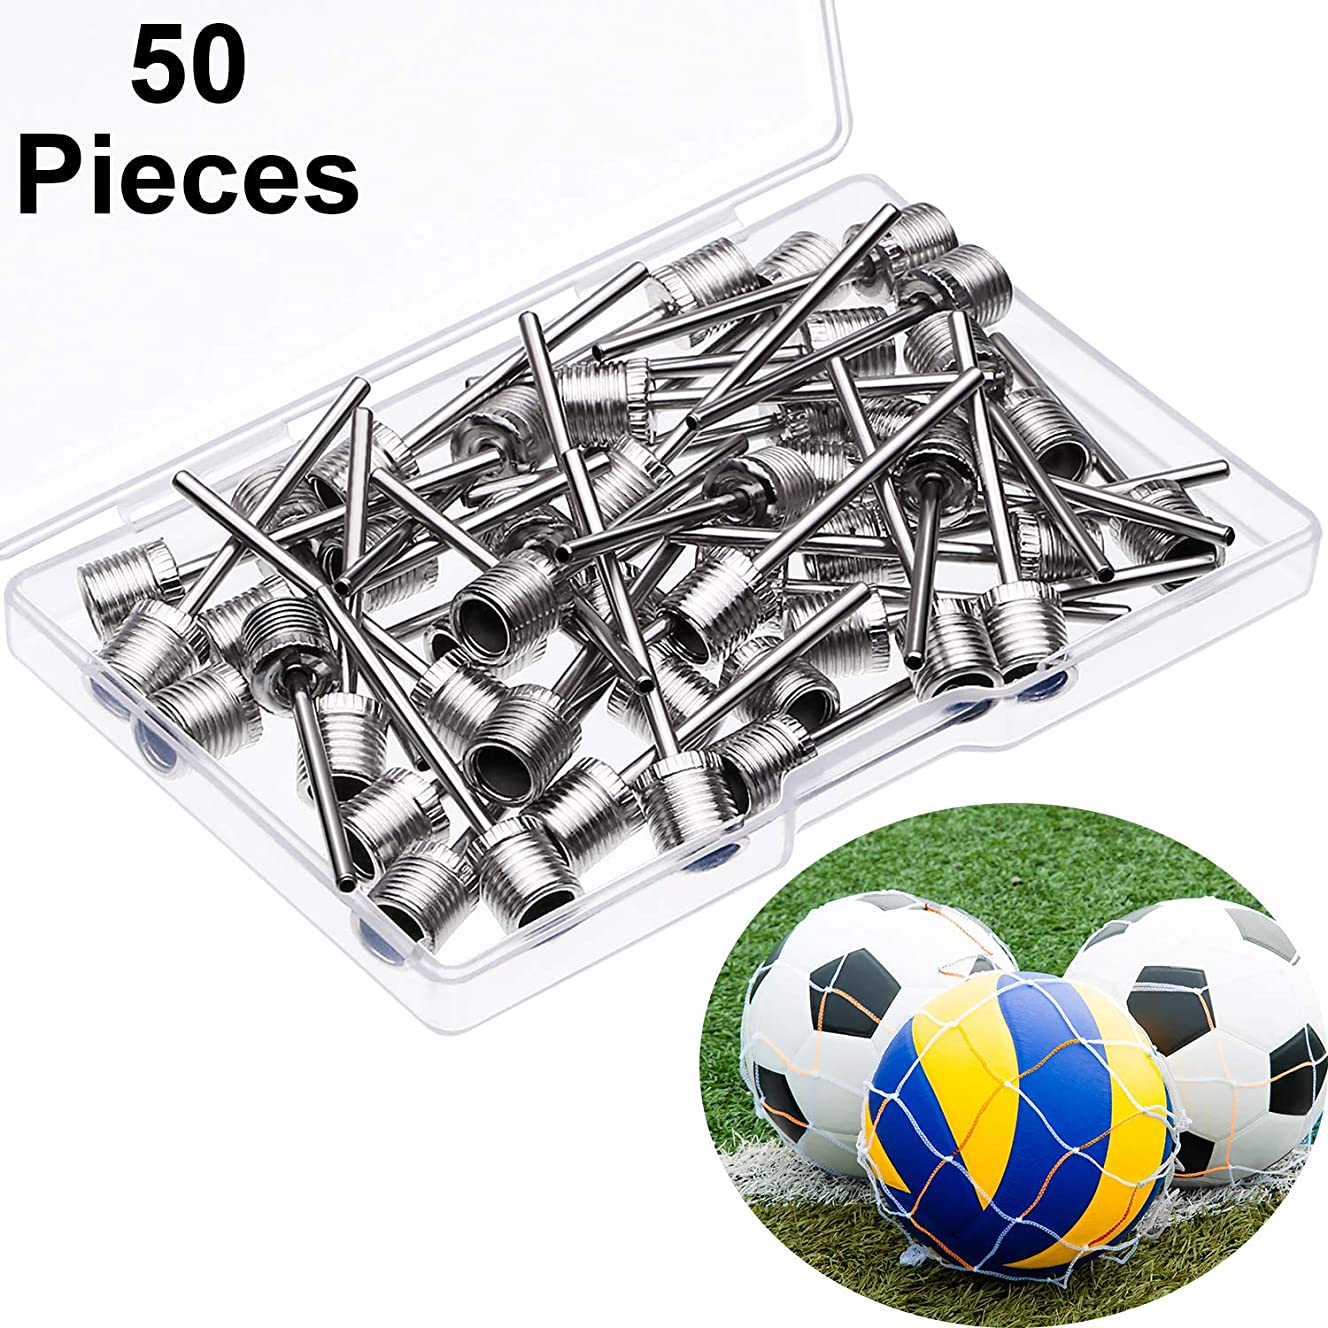 Yaomiao 50 Pieces Ball Pump Needle, Stainless Steel Air Inflation Needle for Sports Balls, Basketball Football Soccer Ball Pump Needle with 2 Net Ball Bag